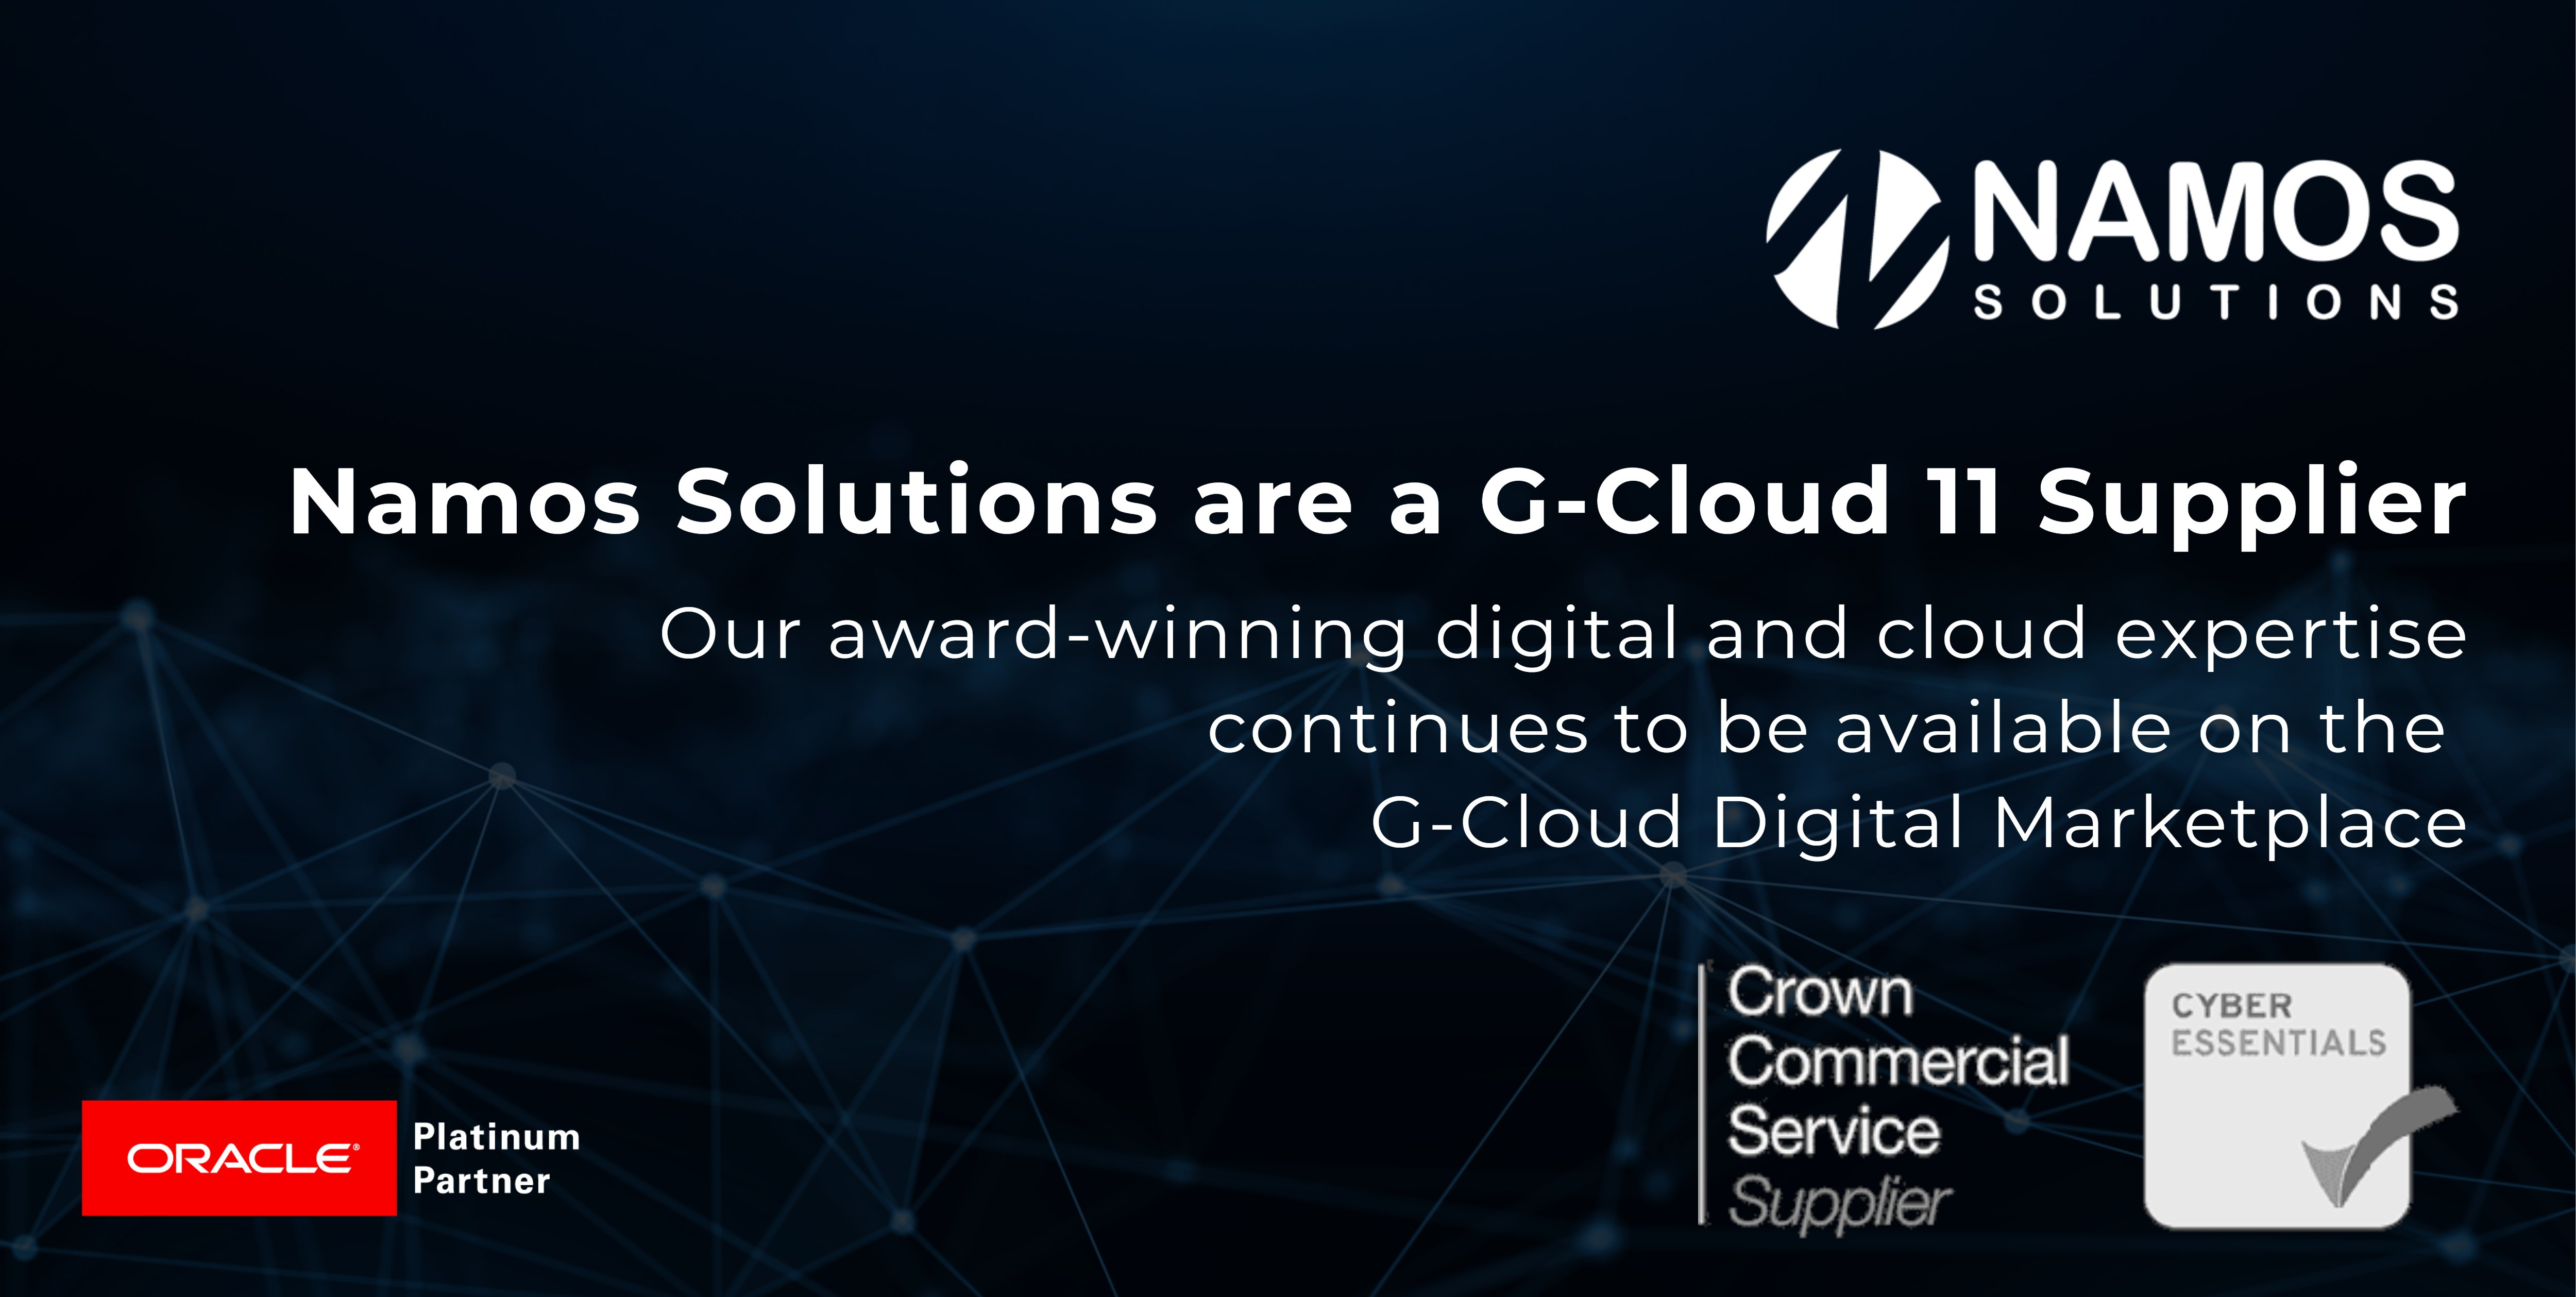 Namos Solutions Cloud Services Go-Live on G-Cloud 11